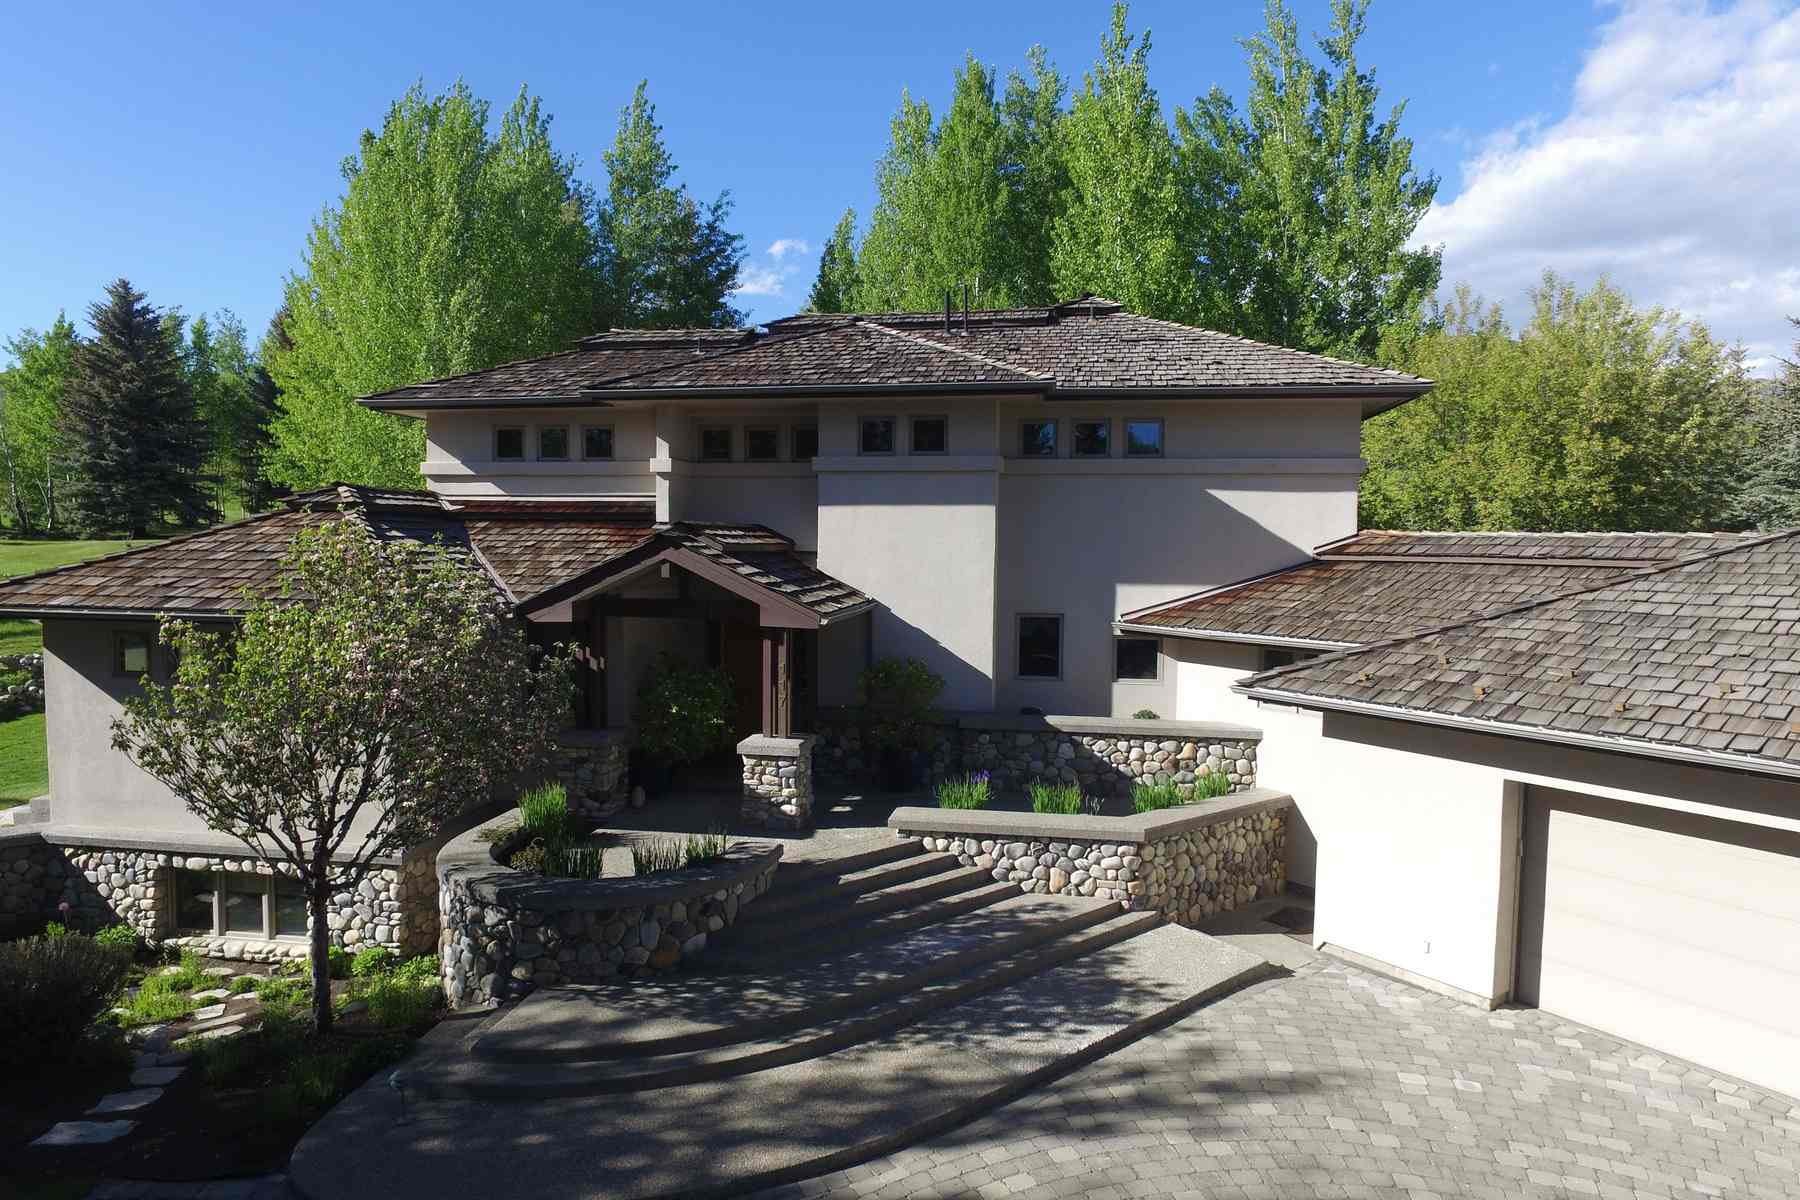 Maison unifamiliale pour l Vente à Mountain Contemporary 117 Camas Loop Elkhorn, Sun Valley, Idaho, 83353 États-Unis